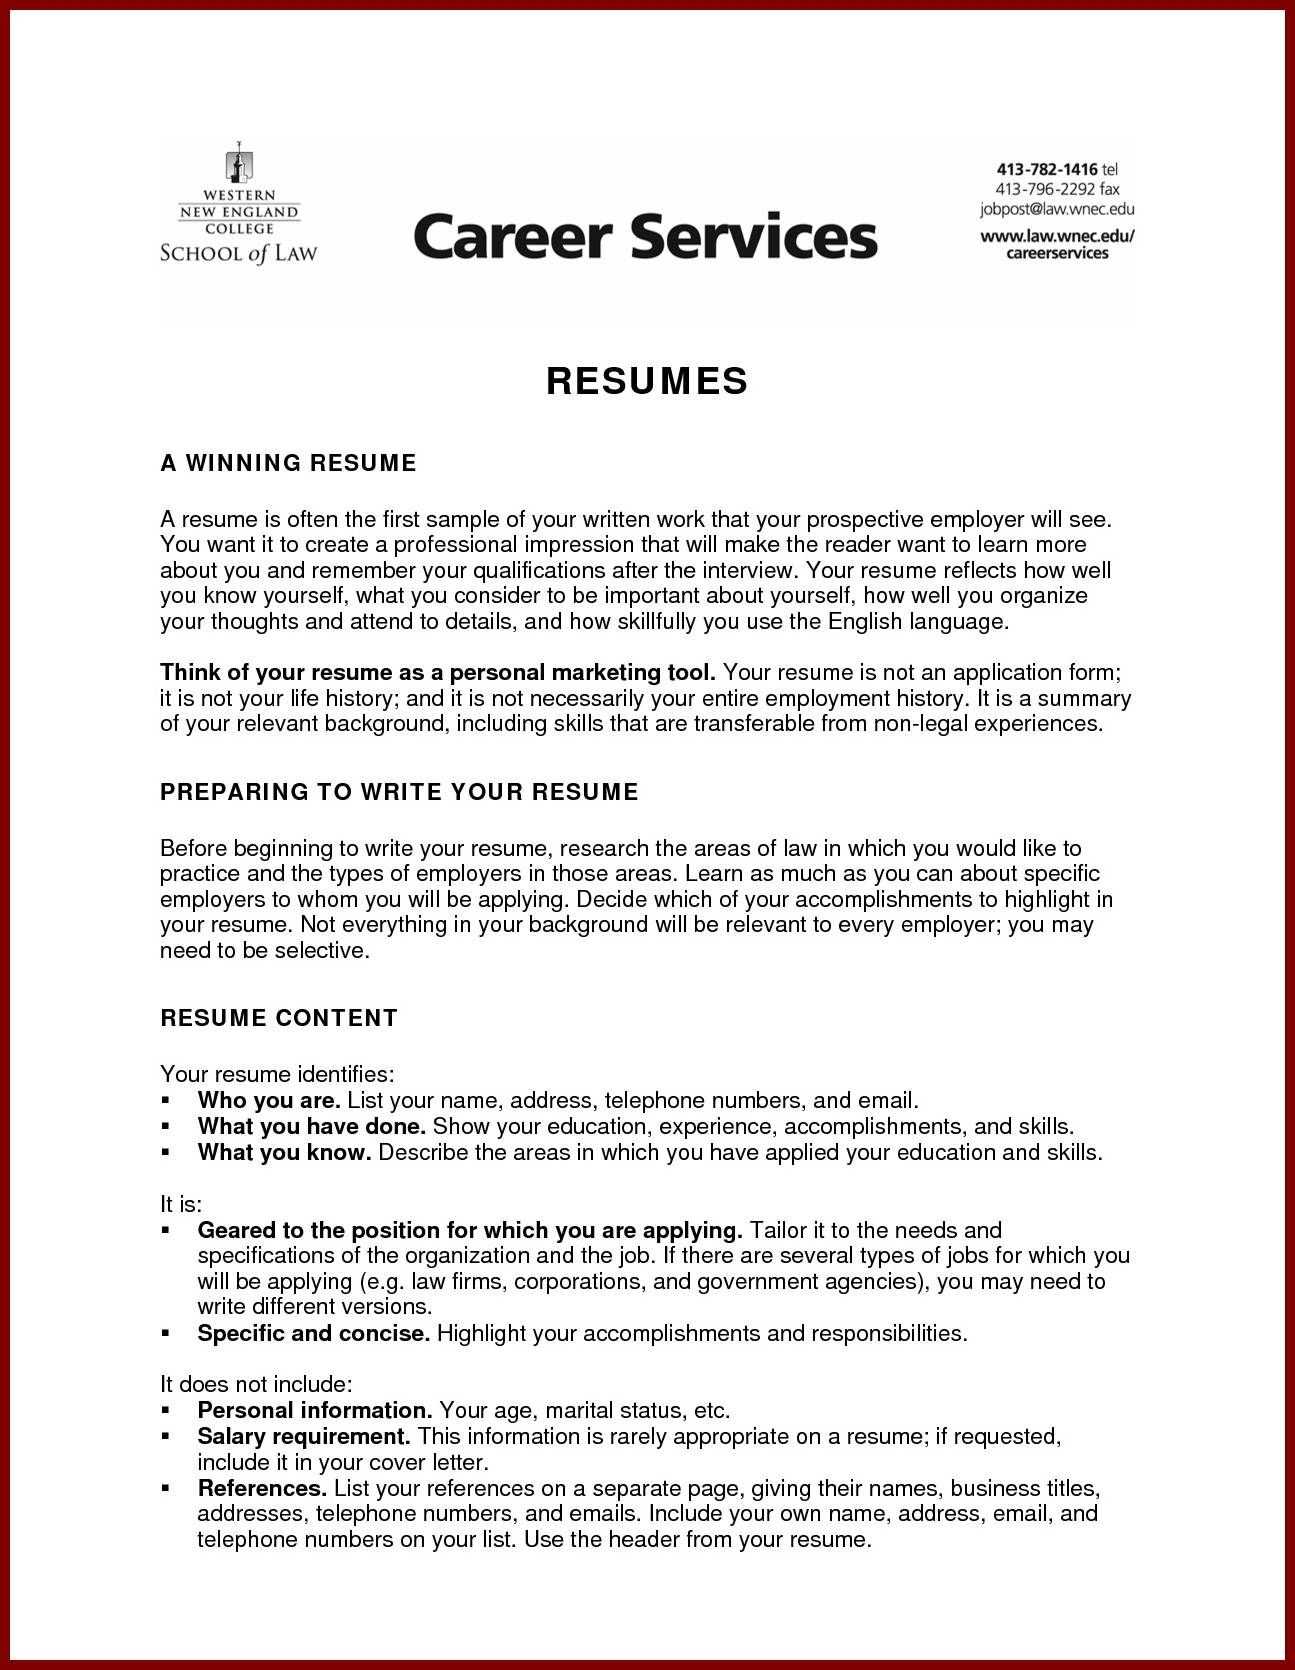 Linkedin Resume Generator Vets Resume Builder Federal Military Inside For Using Linkedin .